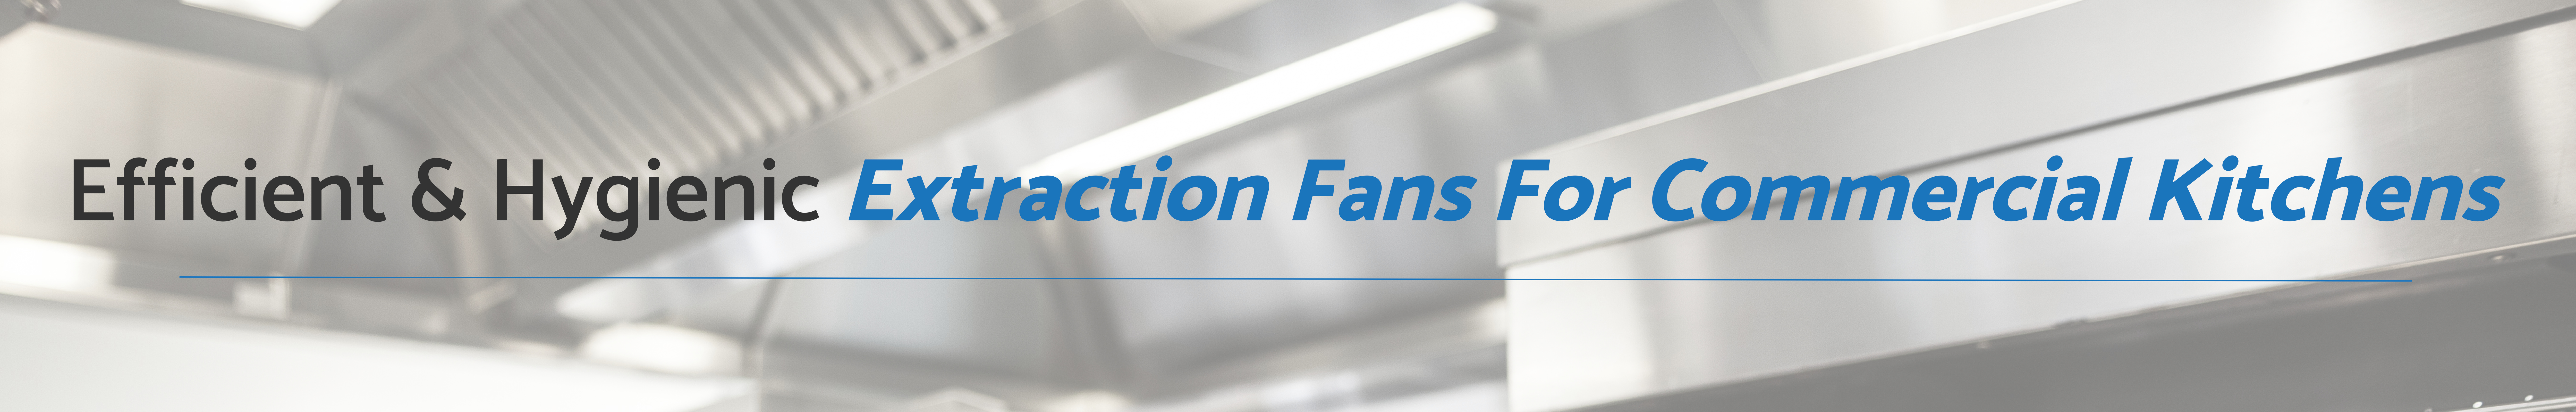 mercial kitchen extraction fans uk stocked